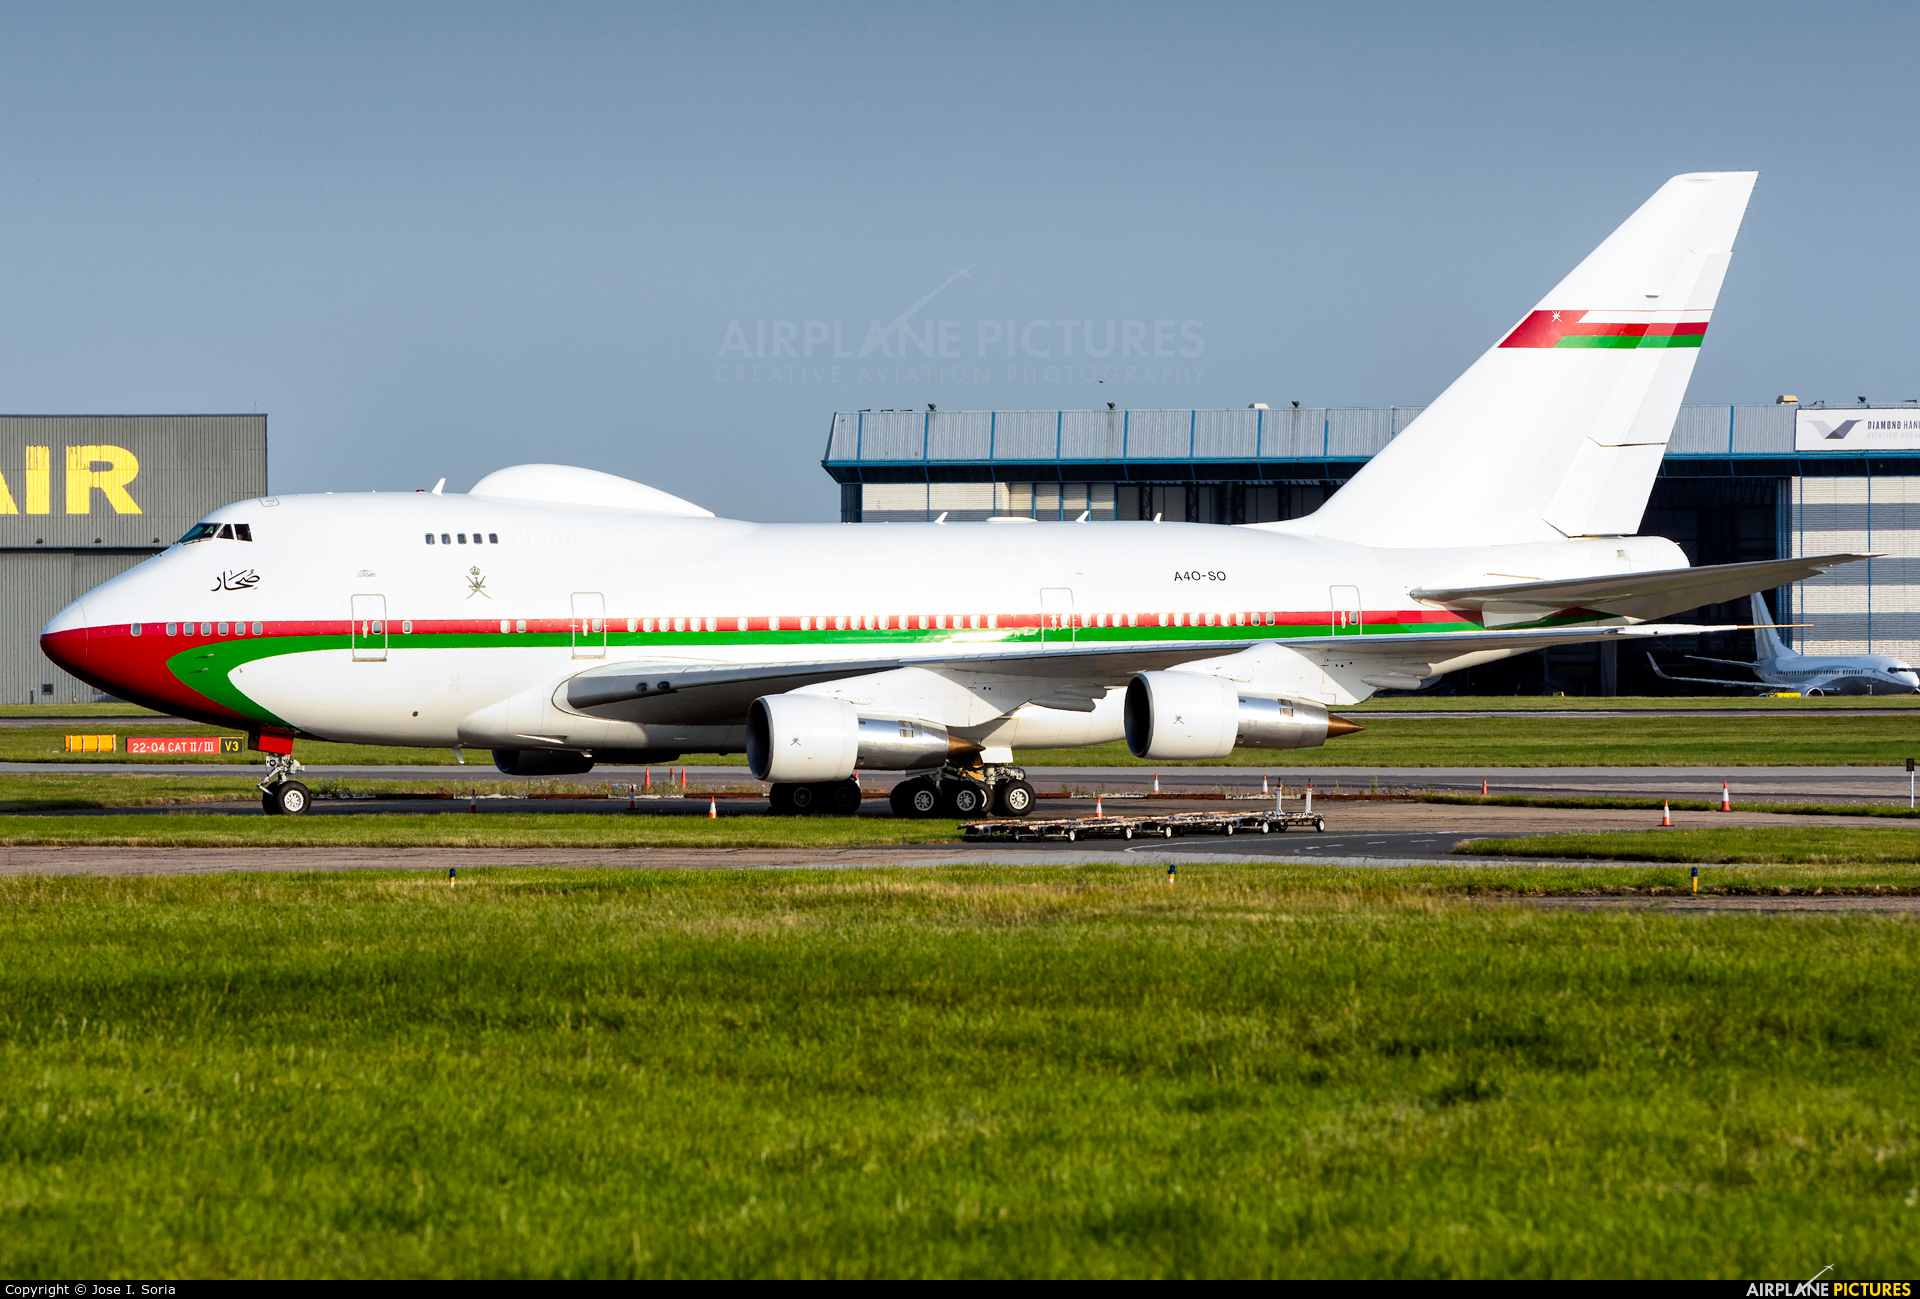 Oman - Royal Flight A4O-SO aircraft at London - Stansted